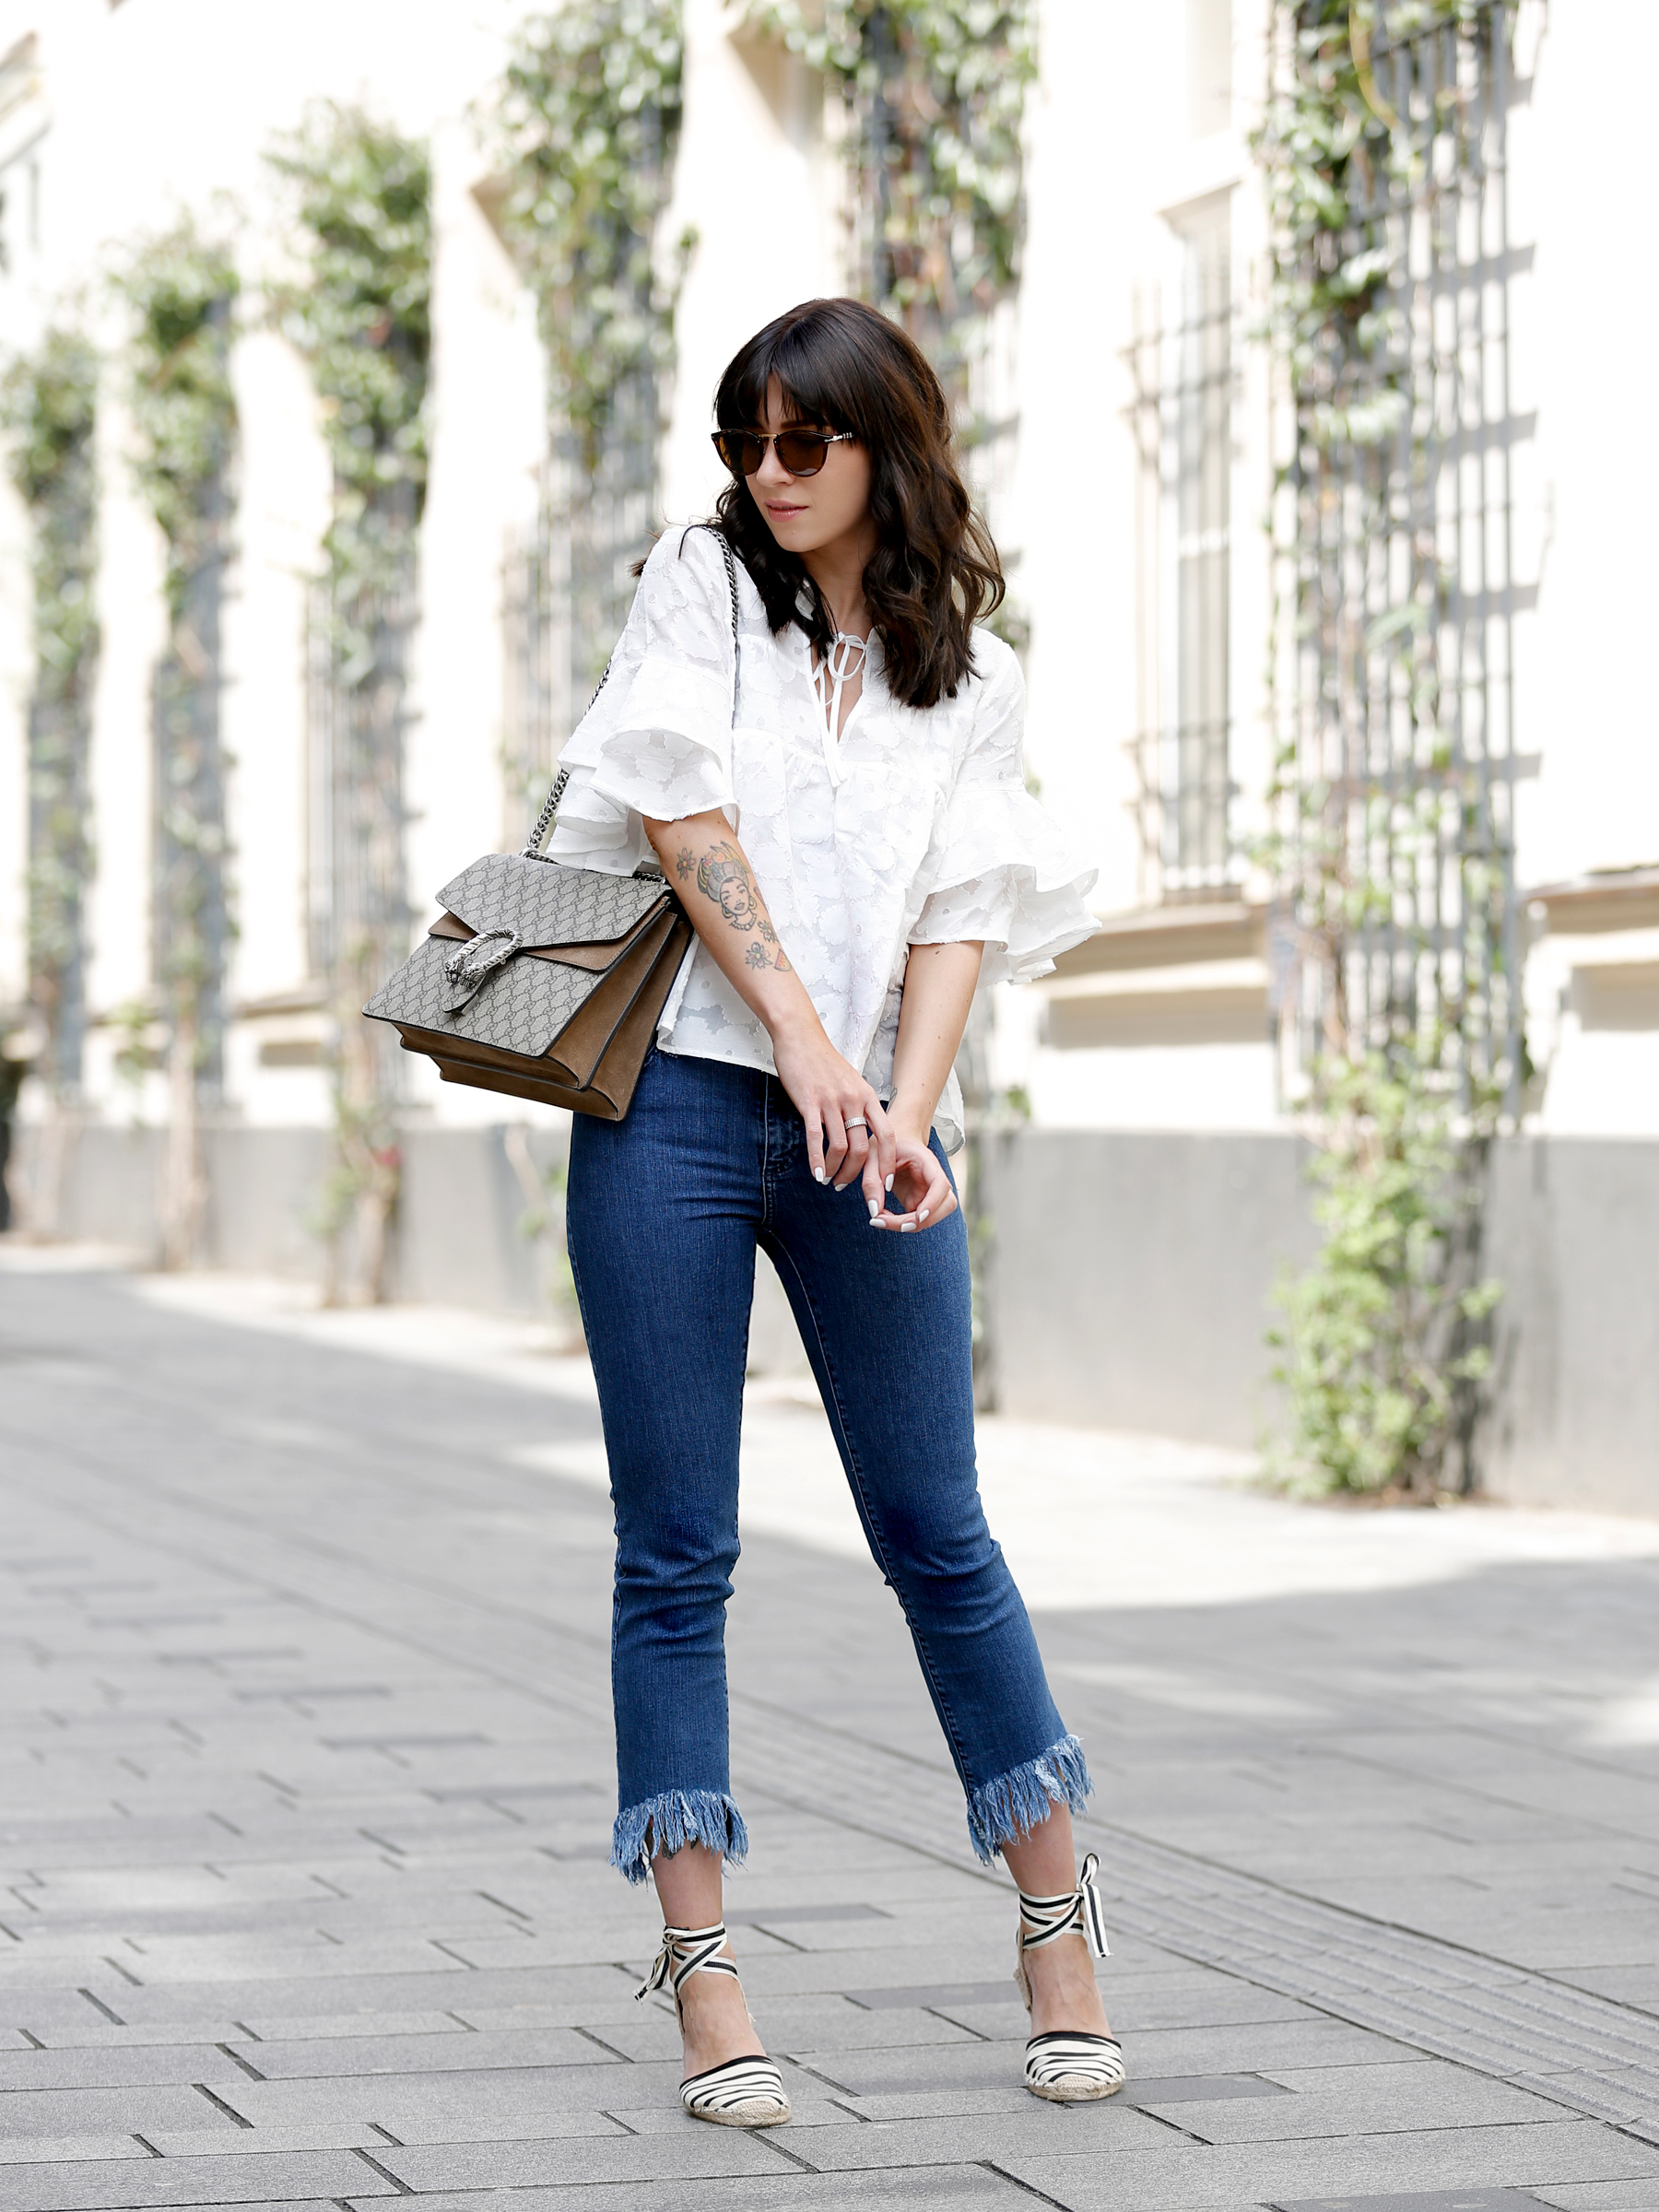 outfit spring summer minimal blue white clean bangs brunette girl cute french parisienne mango fringe jeans denim white blouse shopbop soludos espadrilles gucci dionysus bag luxury fashion modeblog germany ricarda schernus fashionblogger 8